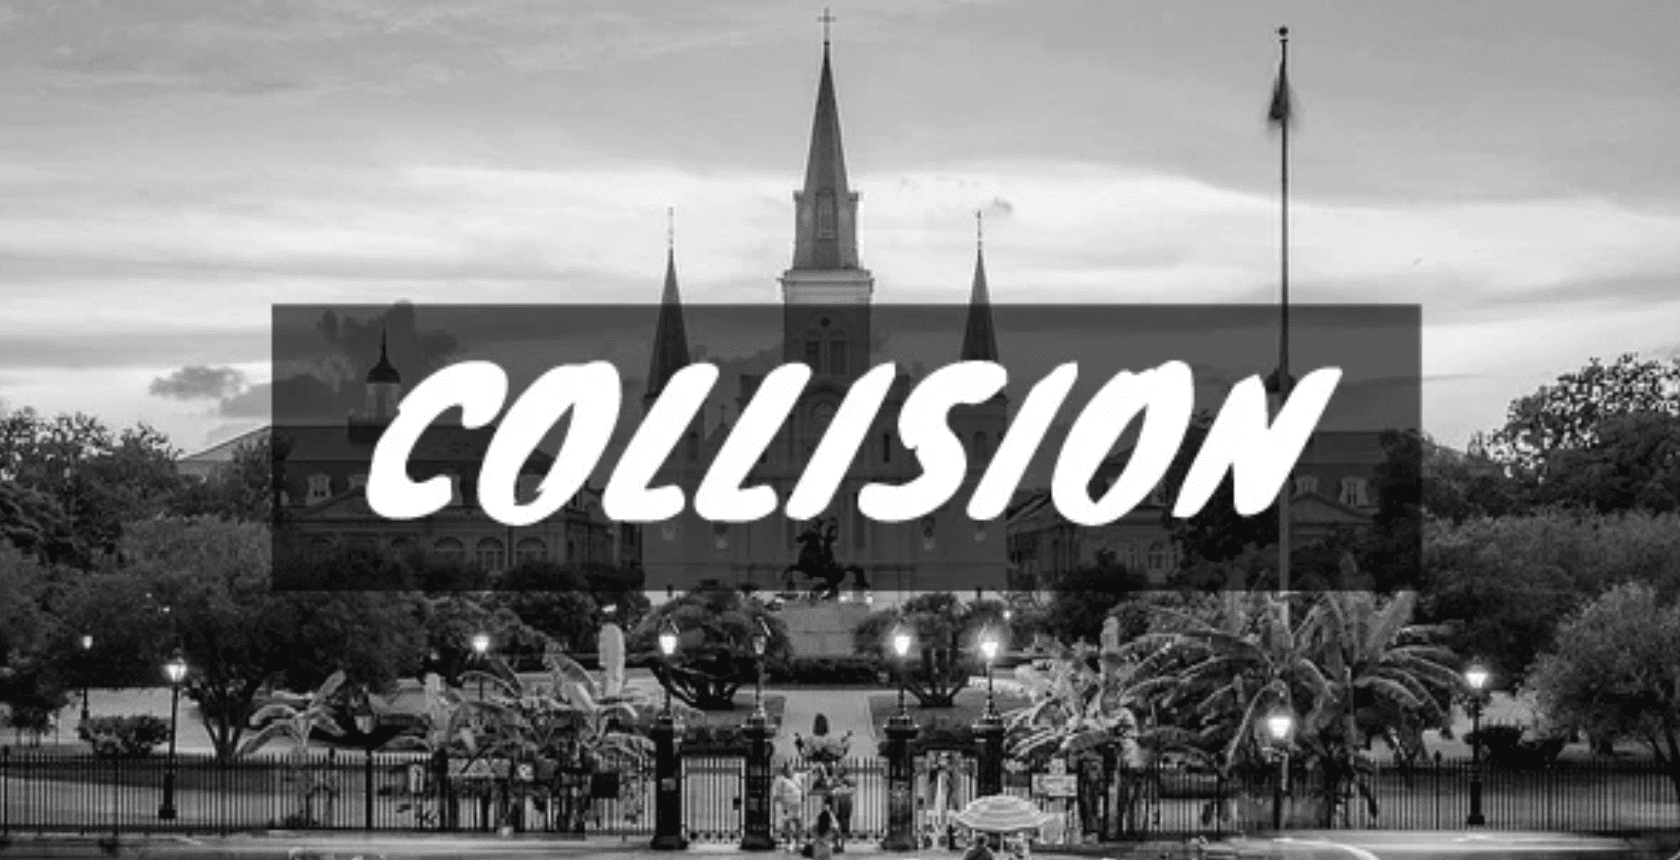 COLLISION overlay in front of jackson square in new orleans